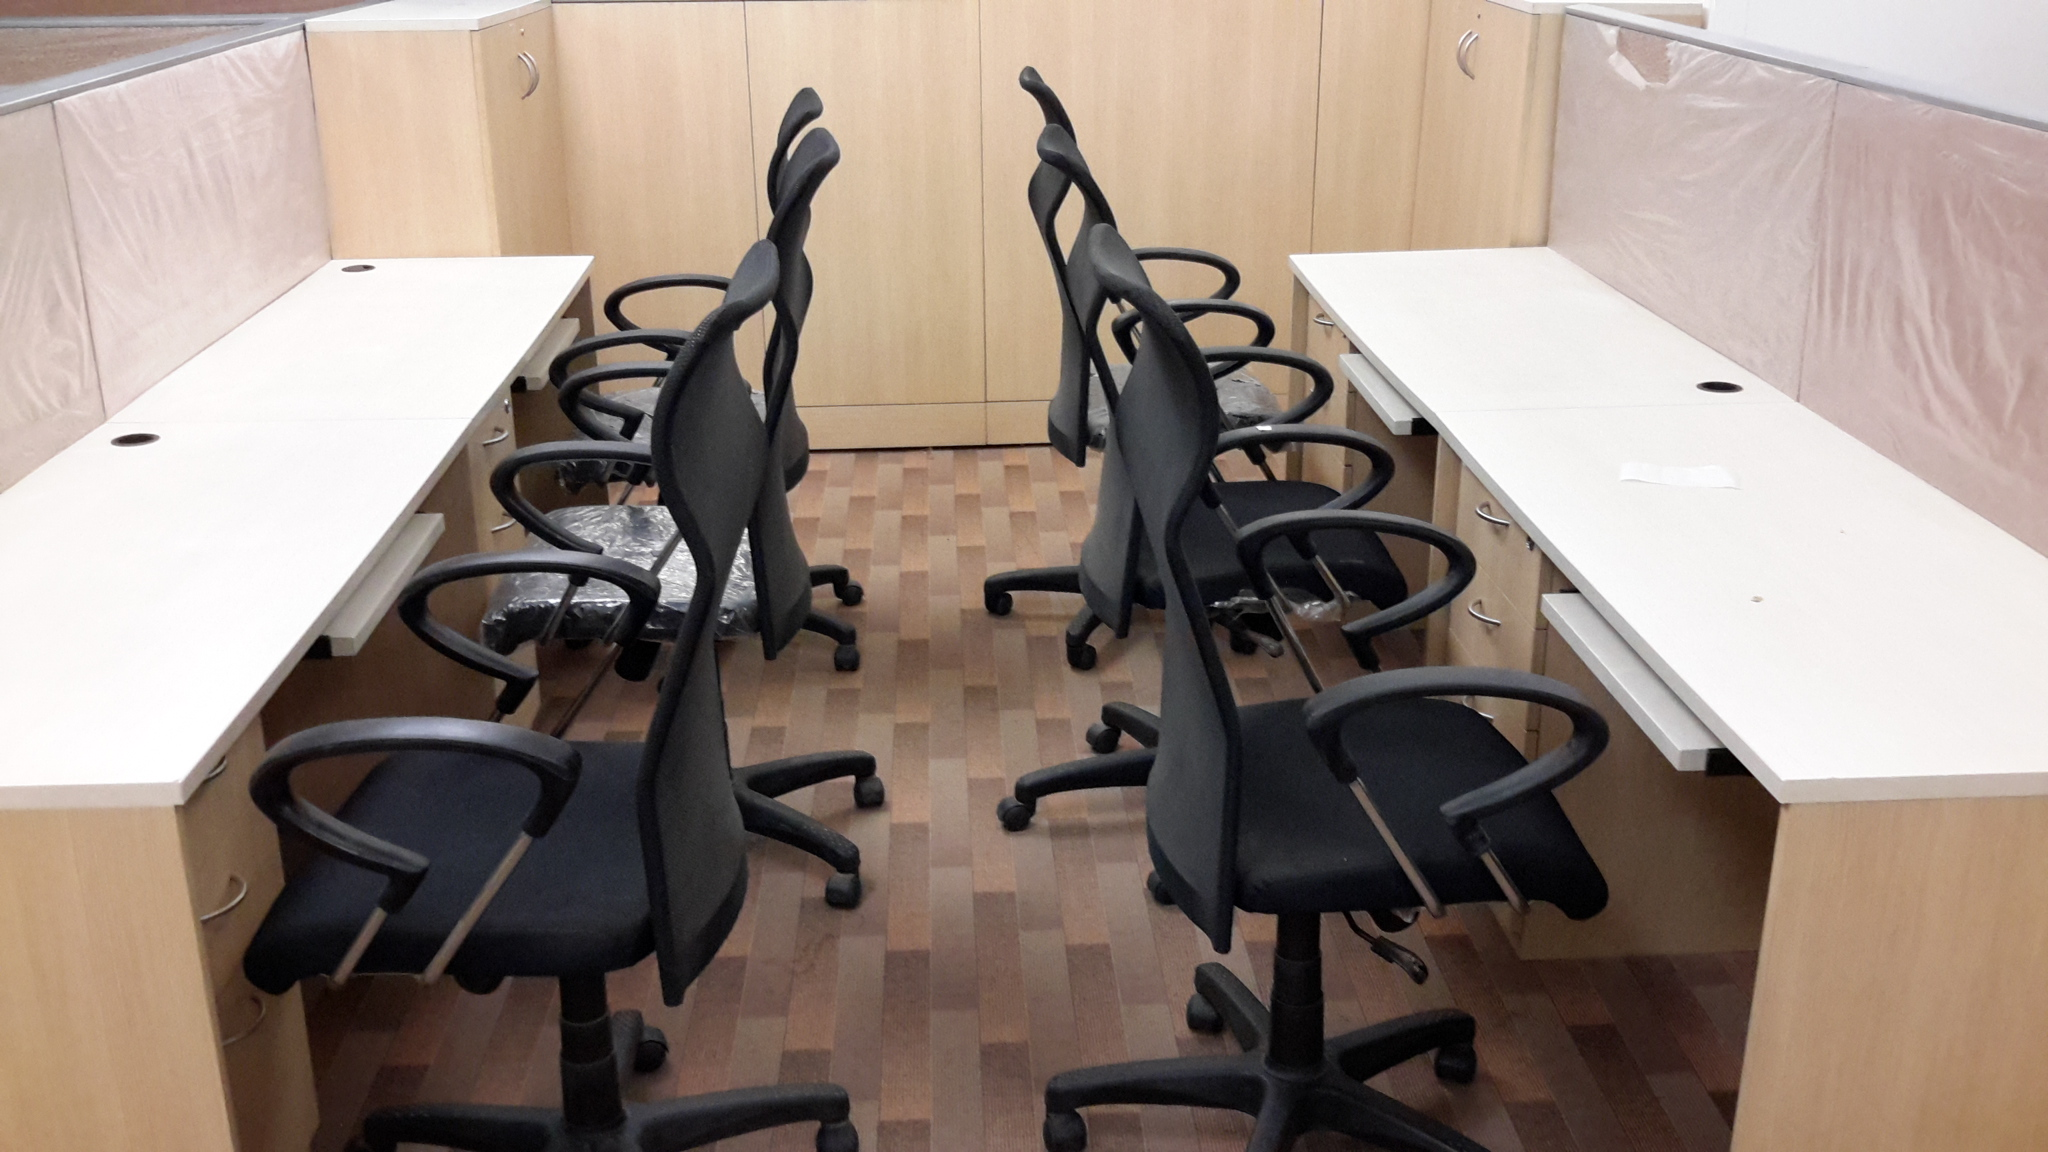 Work Square Lower Parel coworking space shared office mumbai kowrk